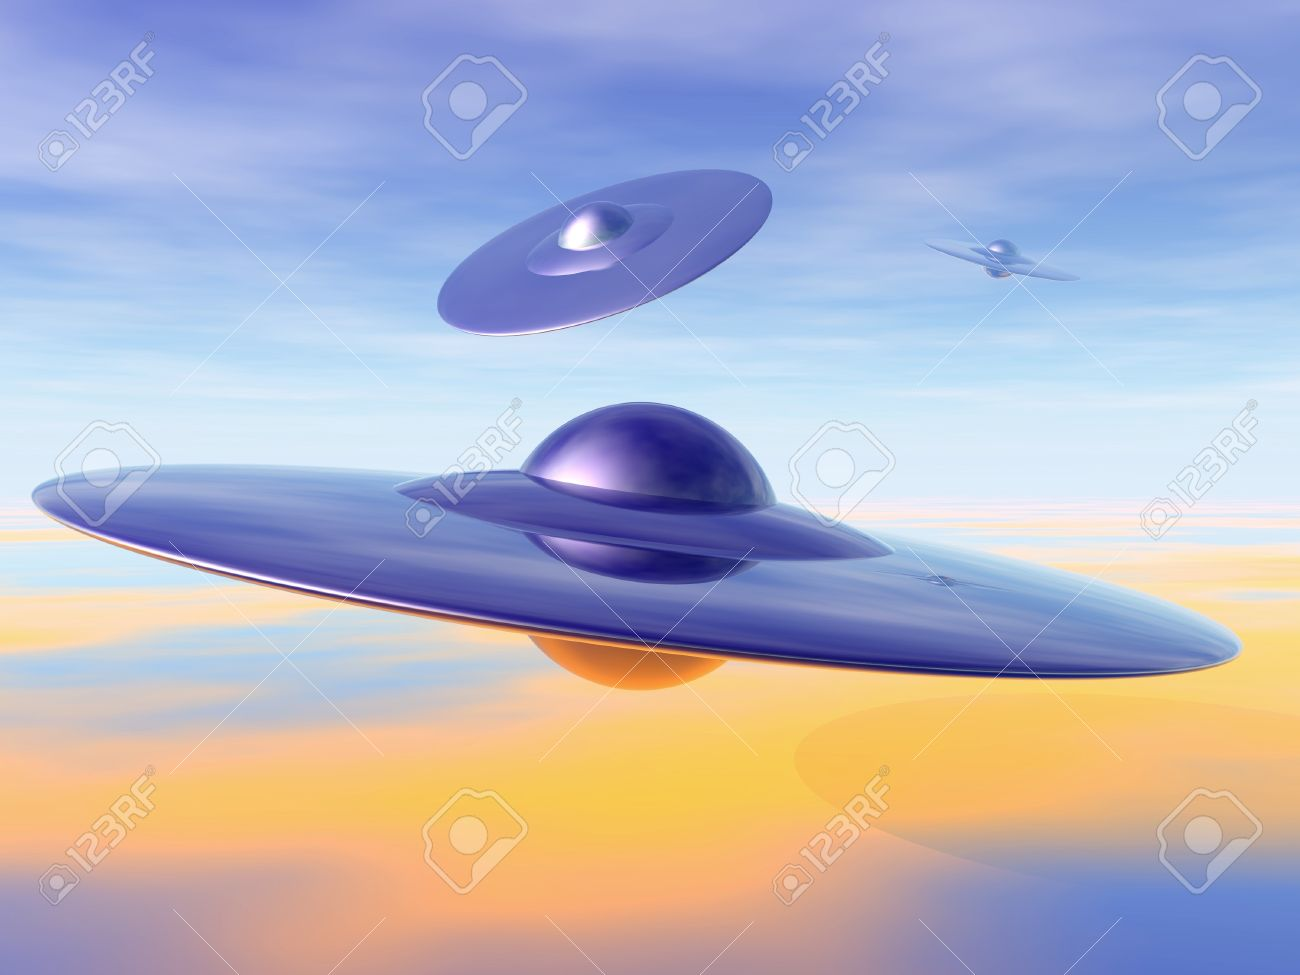 UFO - alien invasion. 3D-illustration of flying saucers. Stock Photo - 10870075